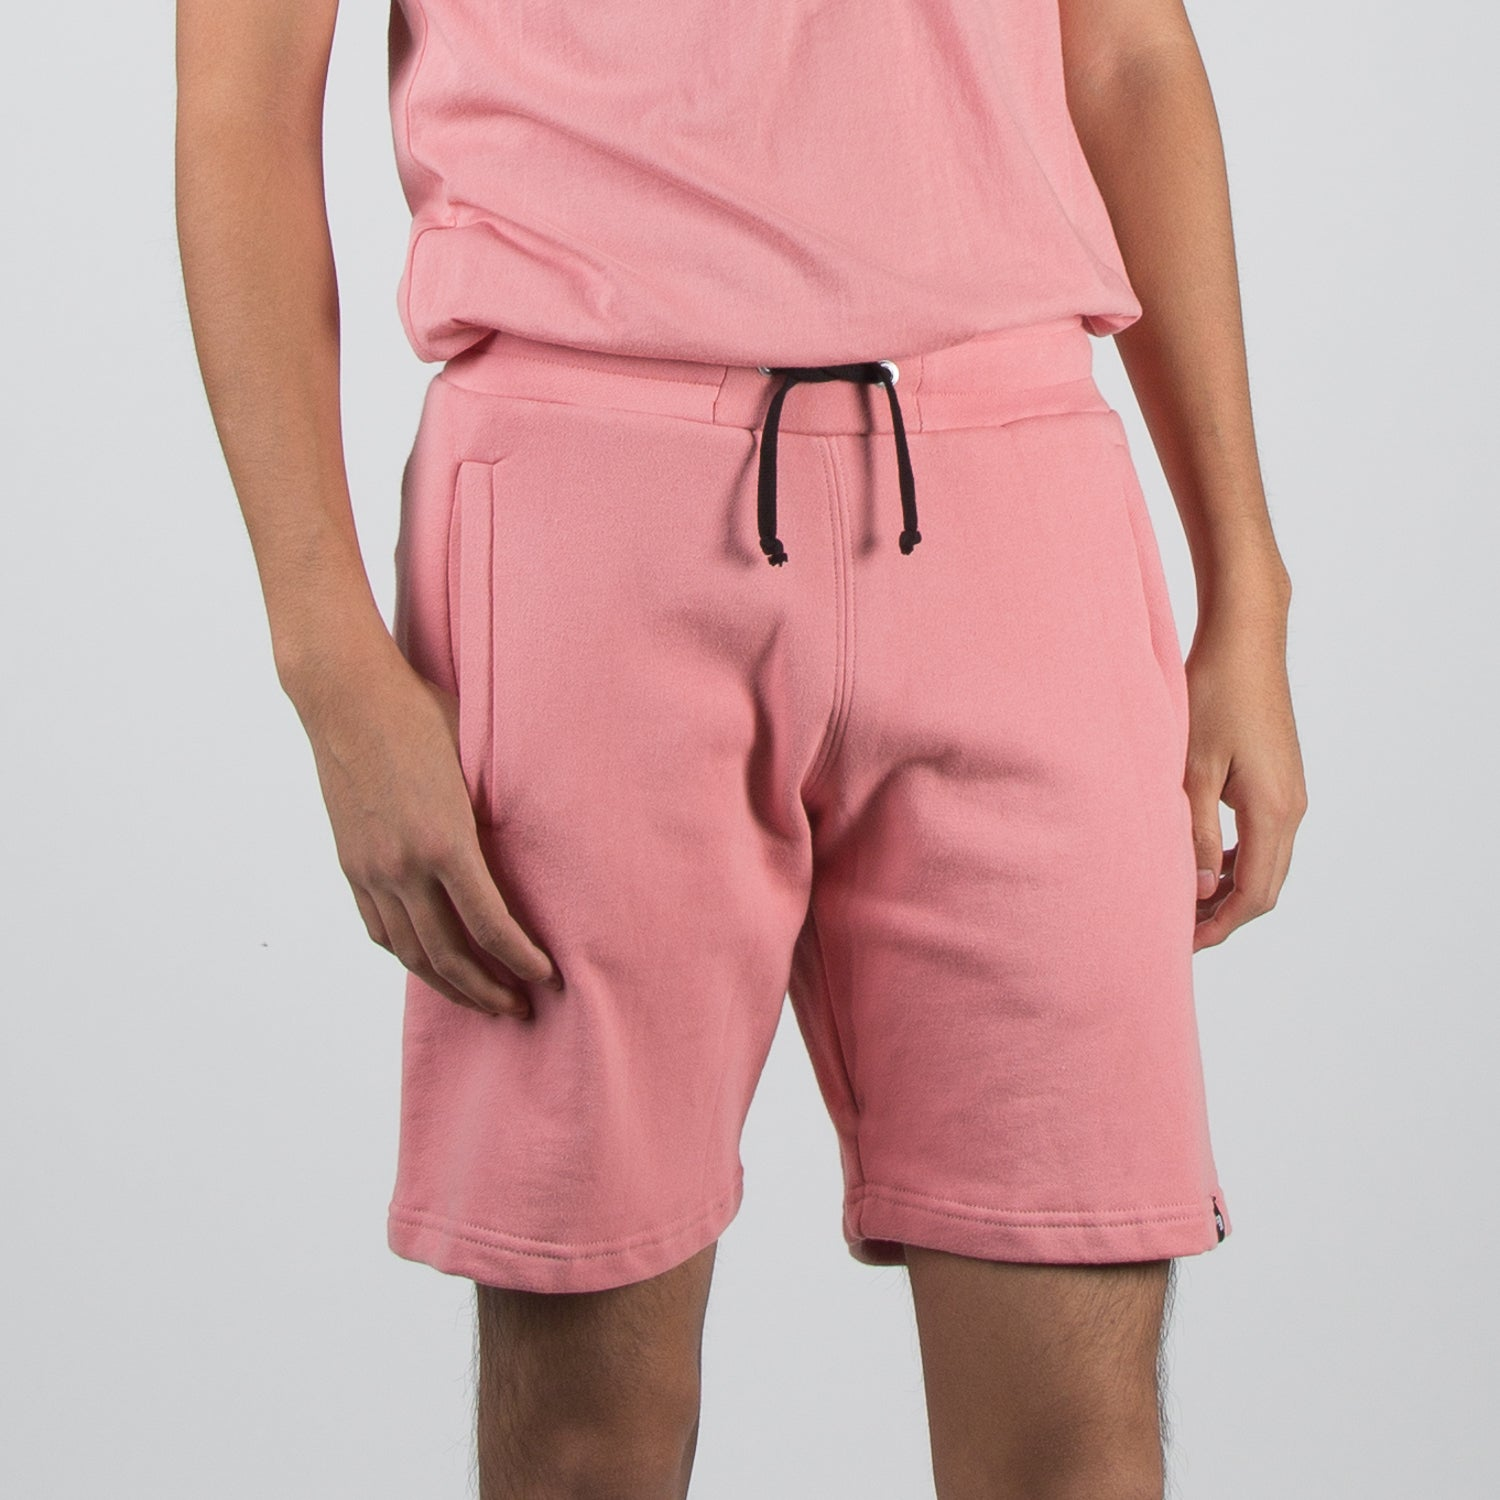 coral sweat shorts by Dim Mak at Secret Location